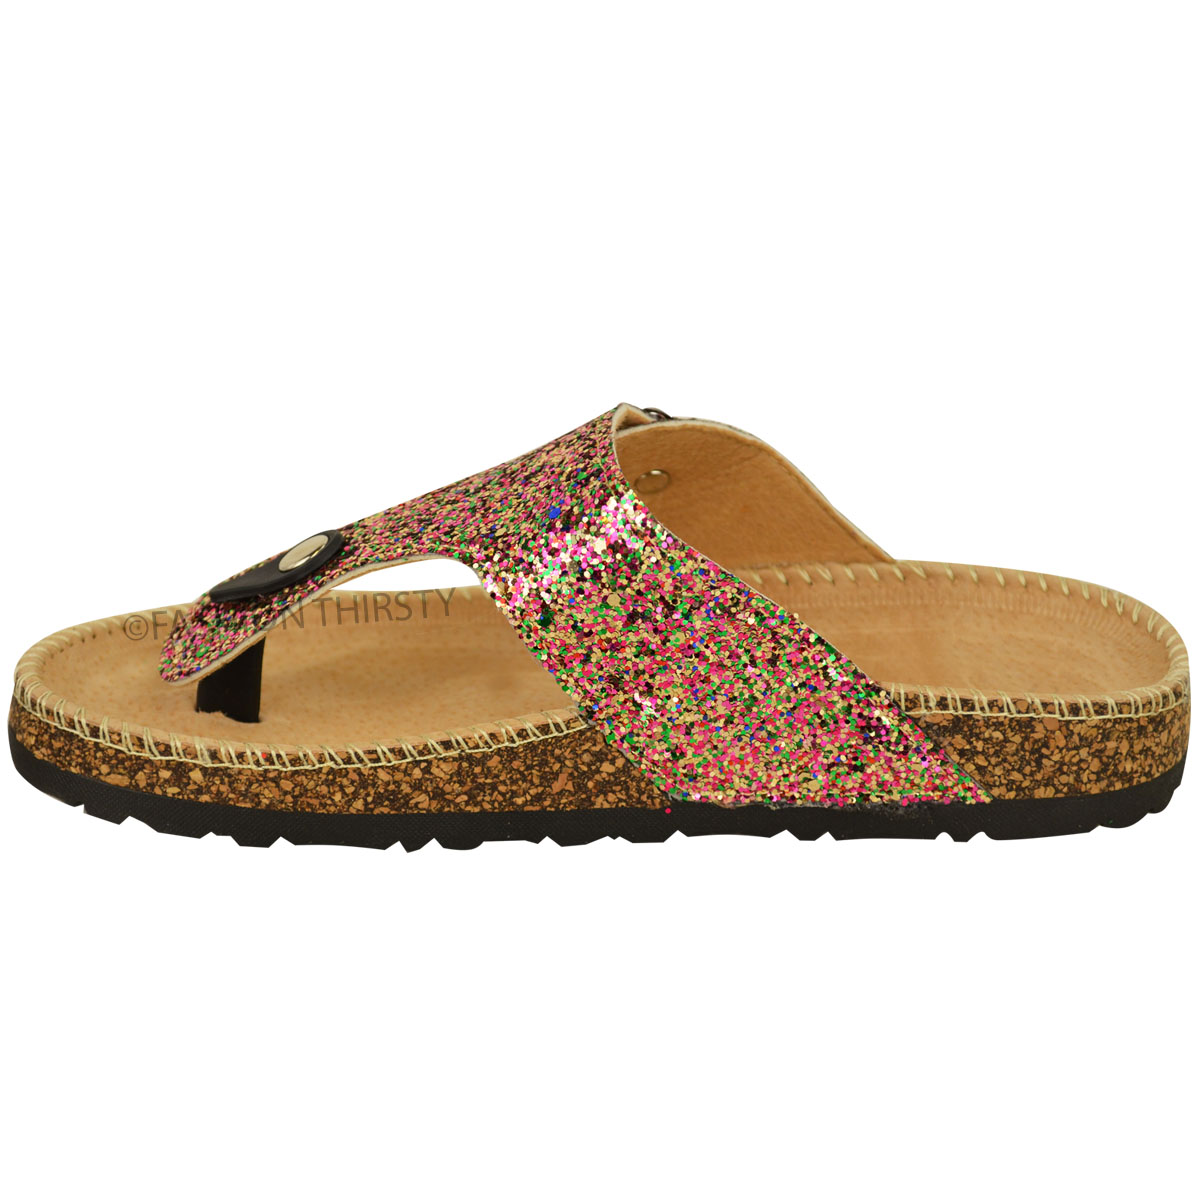 ladies womens flat sandals glitter flip flops slip on toe post thong grip size ebay. Black Bedroom Furniture Sets. Home Design Ideas